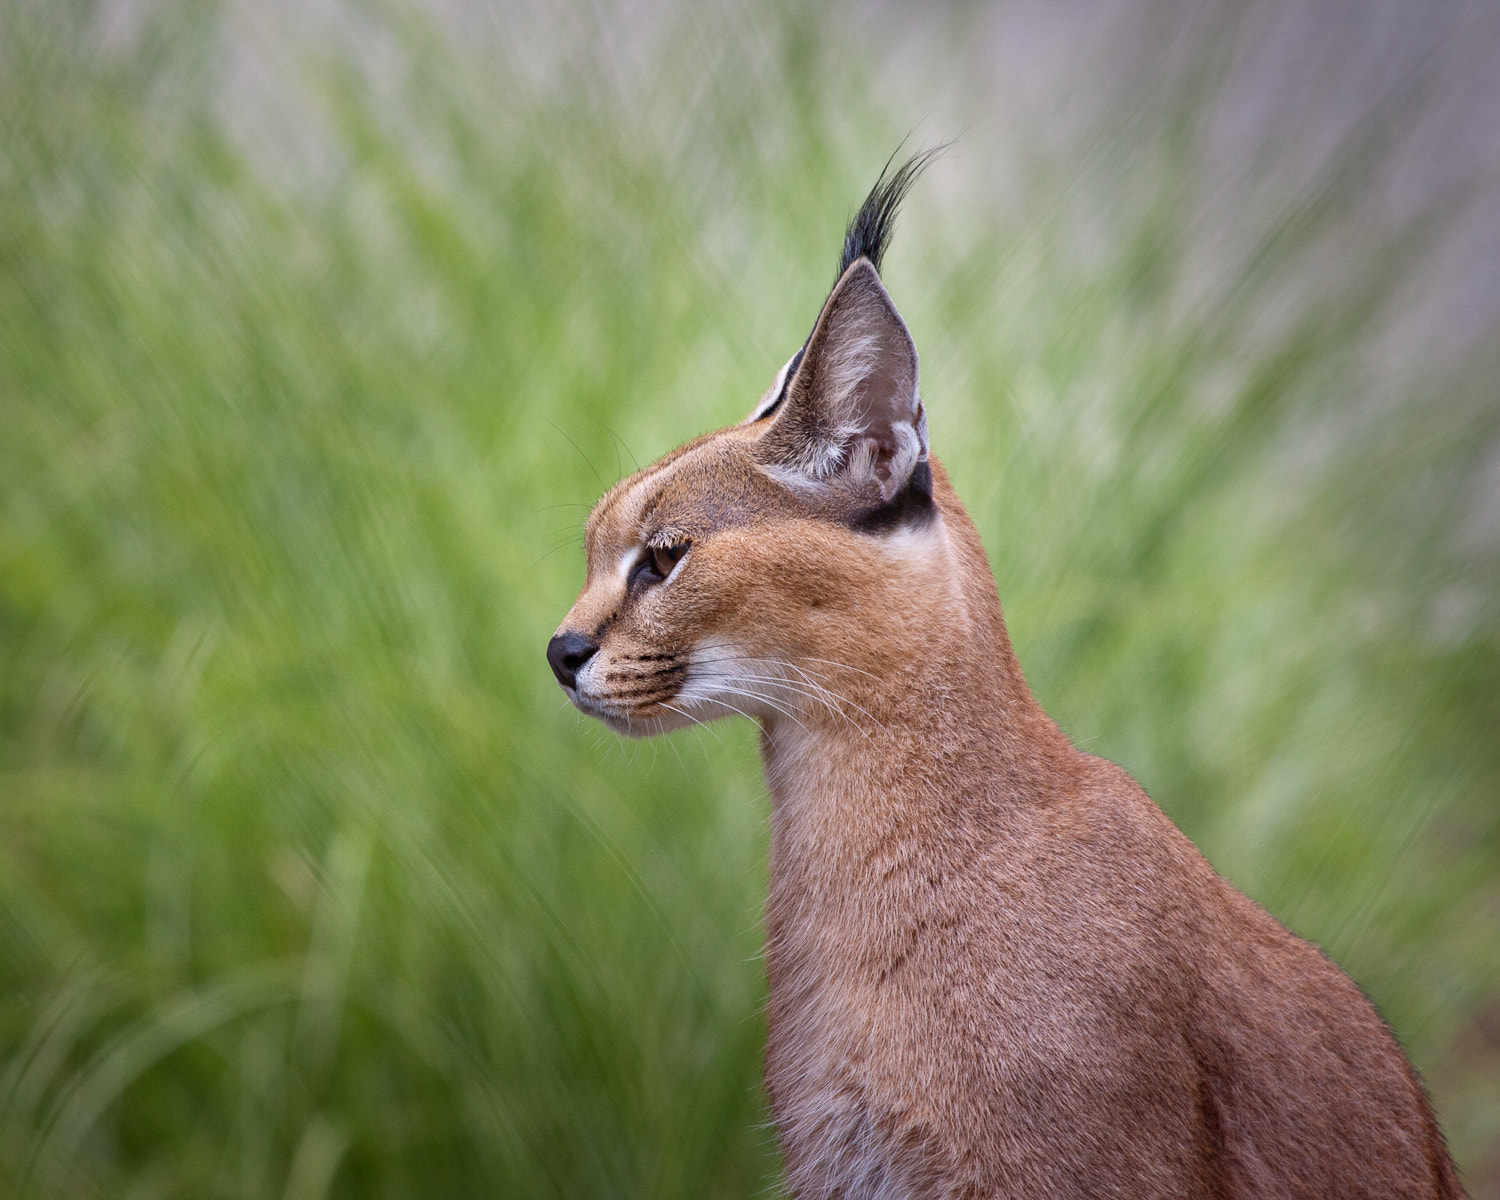 Photograph Caracal by Fedor Pikus on 500px